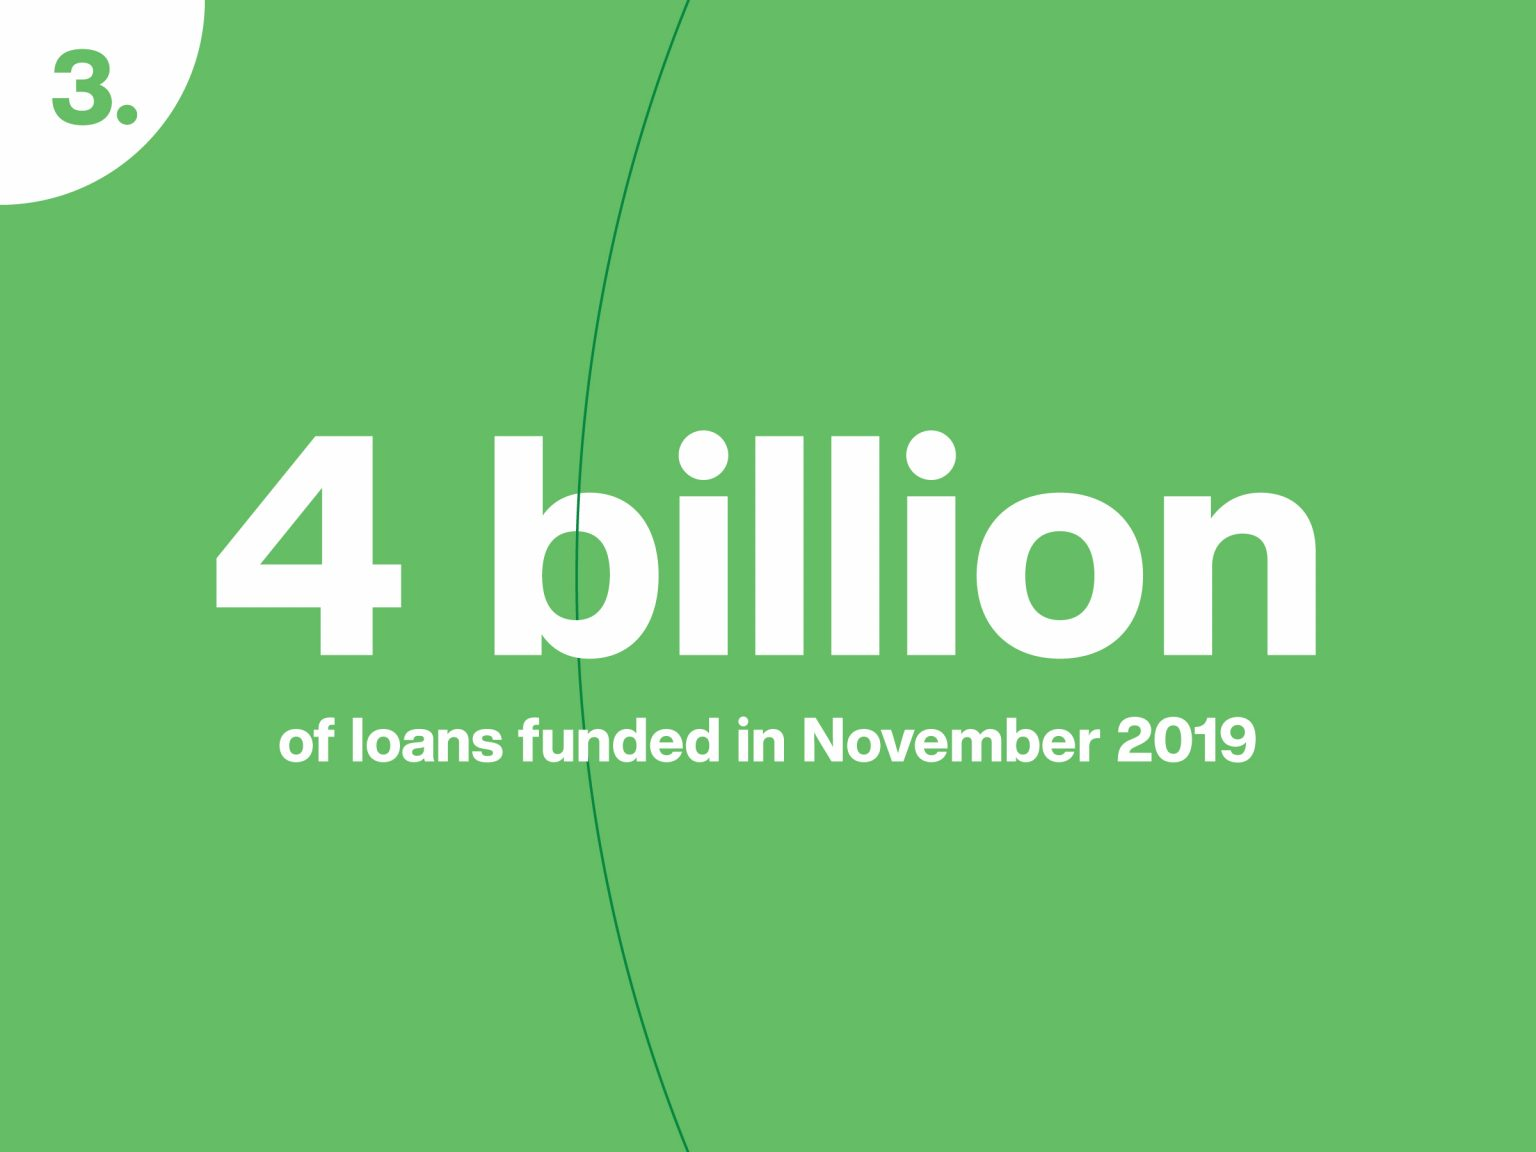 After reaching the first billion euros funded in loans on Mintos in August 2018, the next three milestones came in 2019: EUR 2 billion of loans funded in April, EUR 3 billion in August, and EUR 4 billion in November. This impressive growth rate illustrates not only demand for the Mintos service, but overall growing interest in investing in loans among individual investors globally.